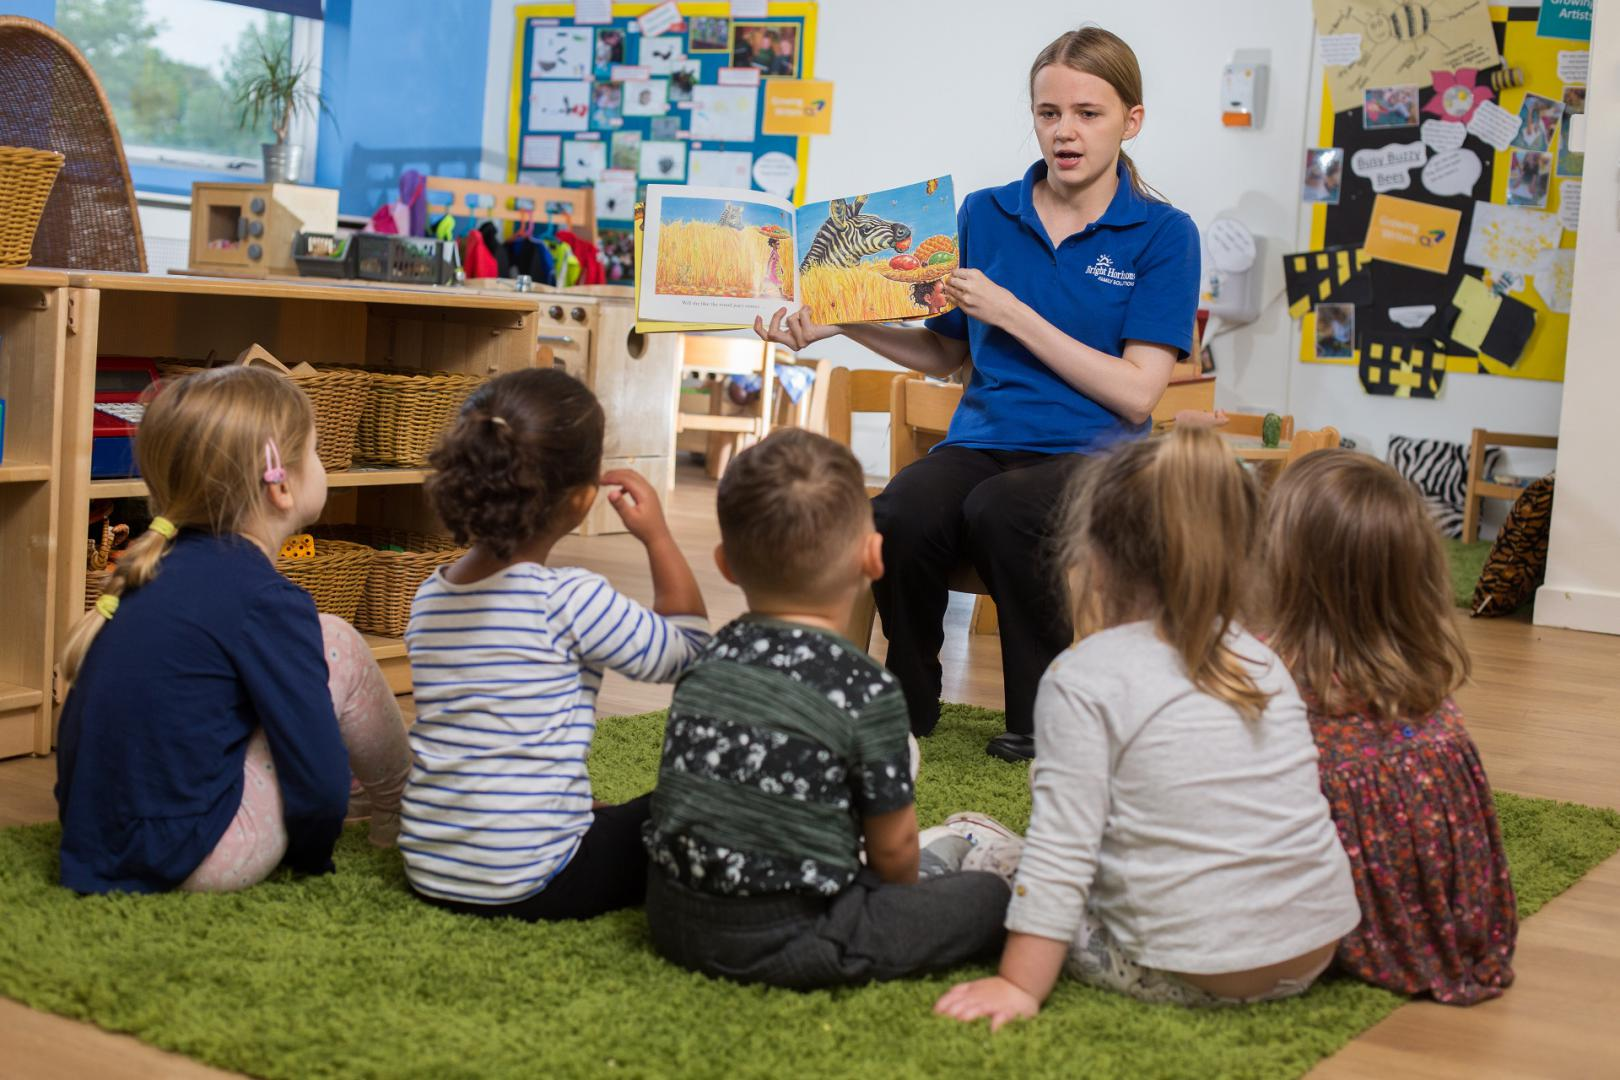 Over 20 Childcare Support